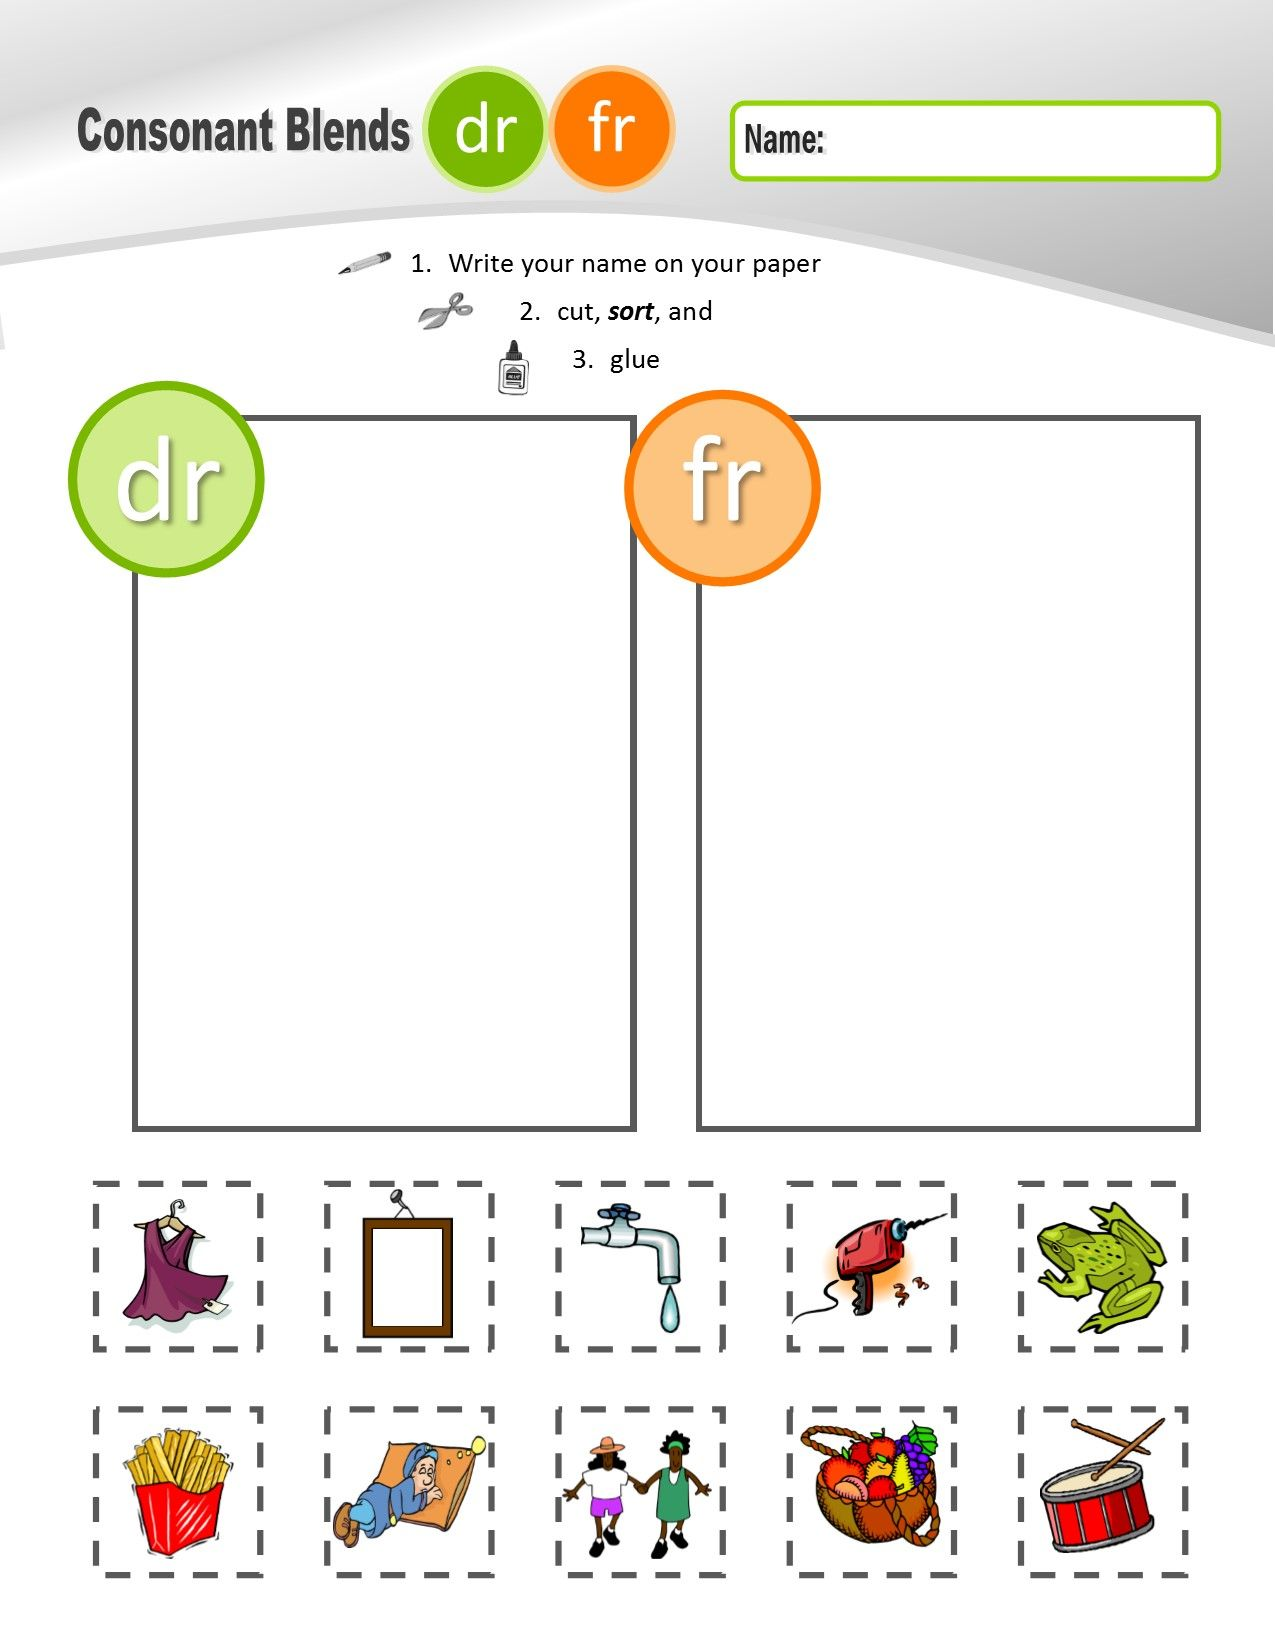 Cr Consonant Blends Worksheet